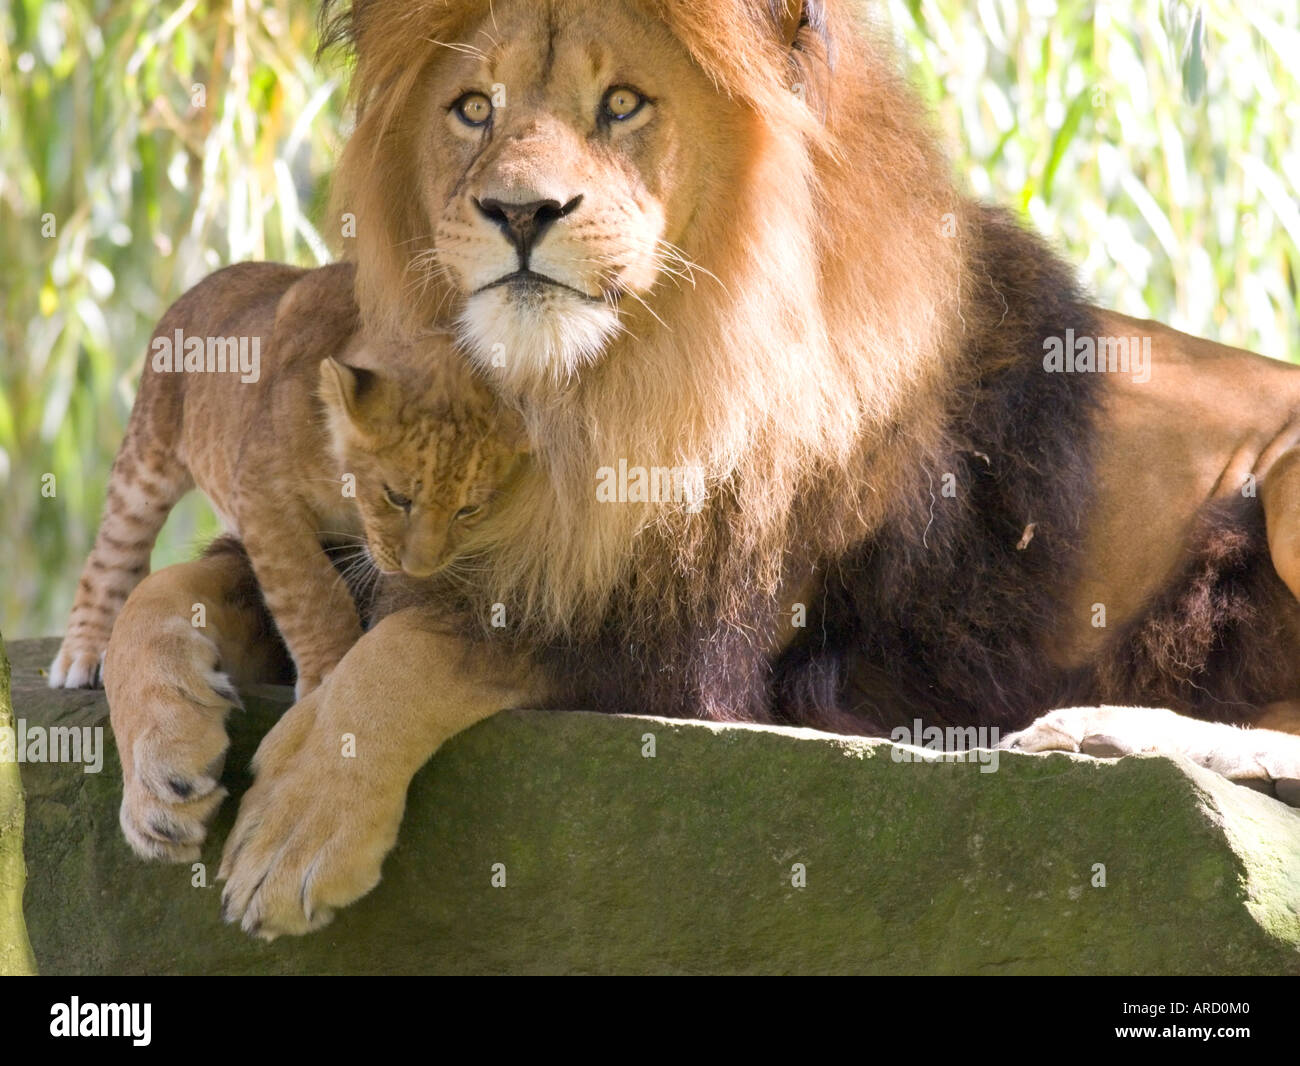 Father Son Lion Male Lion Stock Photos & Father Son Lion